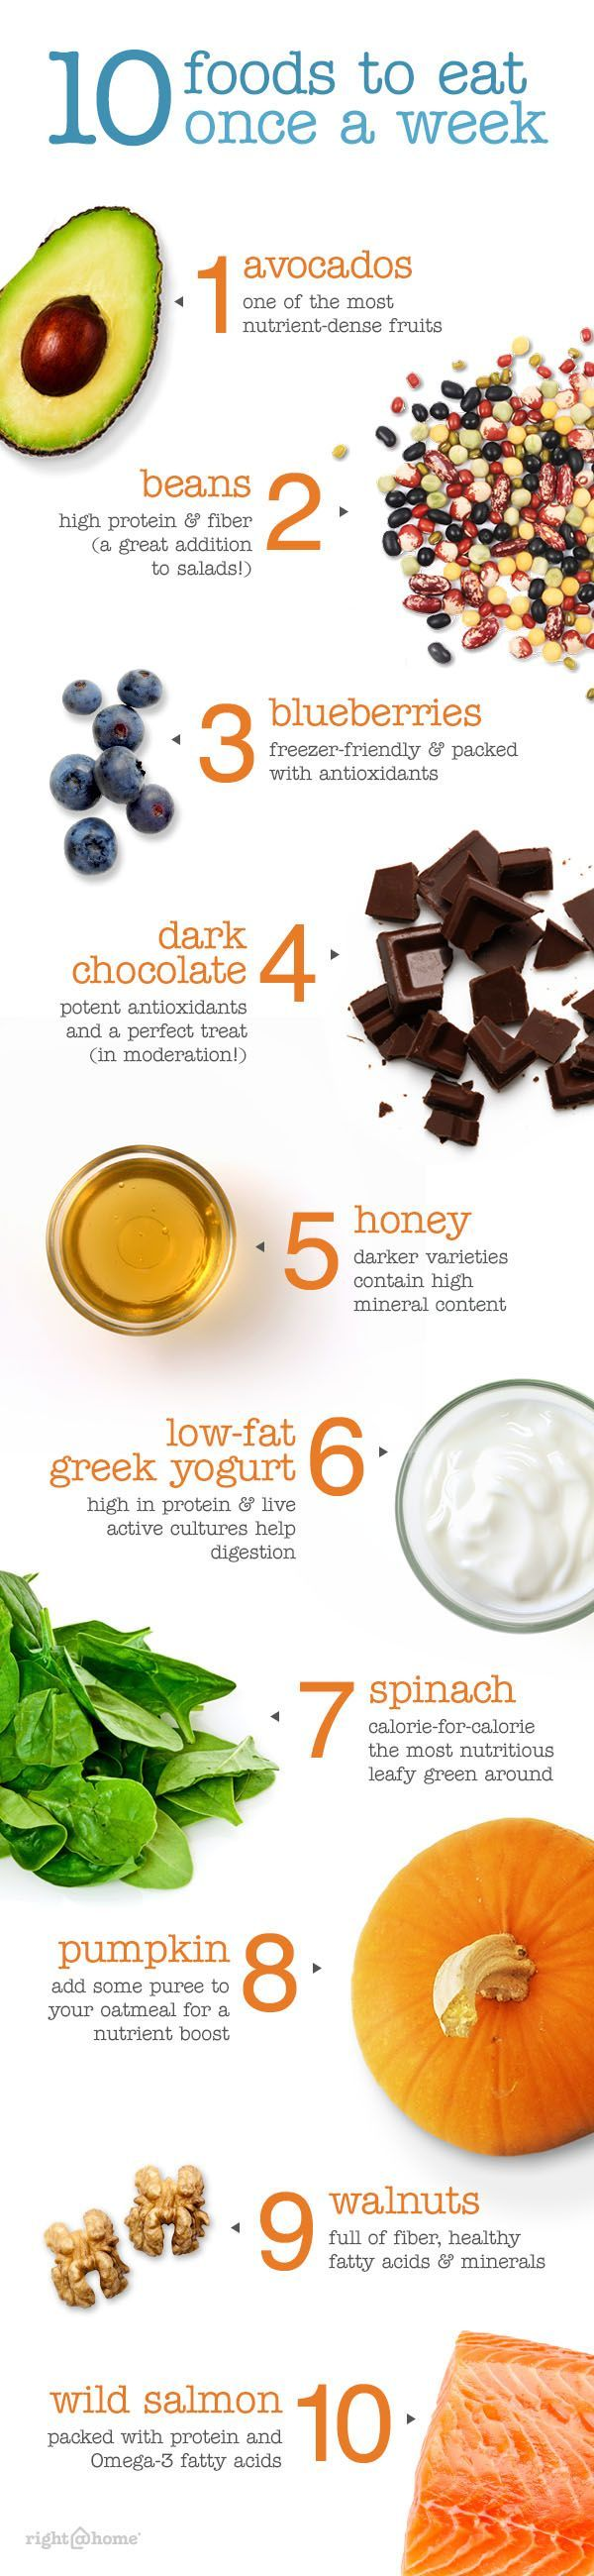 10 Foods You Should Eat Once a Week - Infographic